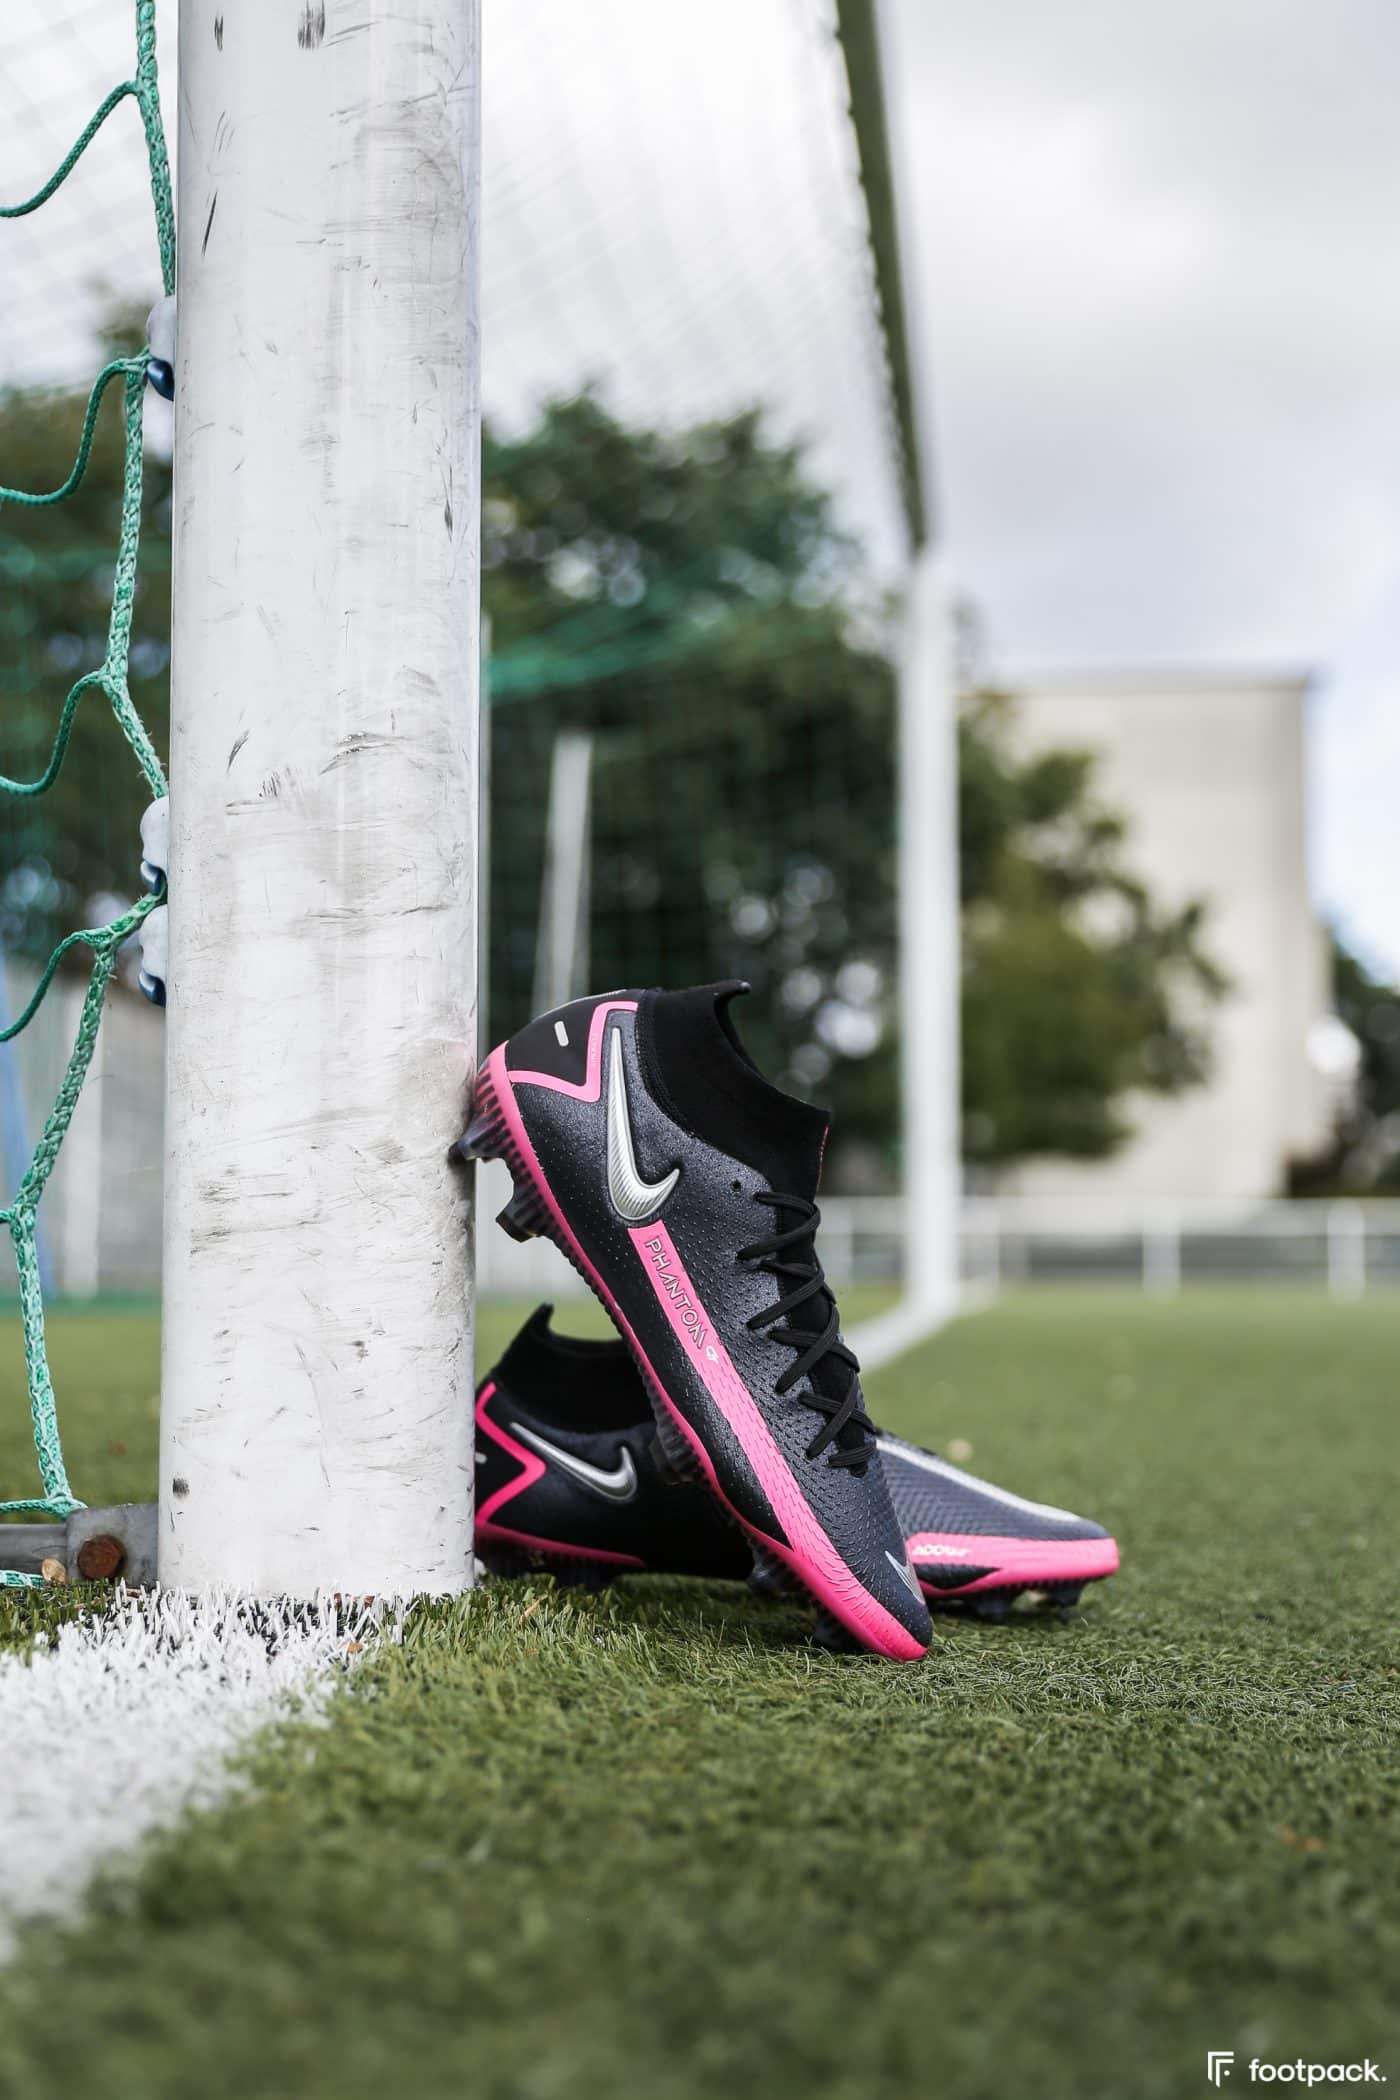 jeu-concours-footpack-crampons-2